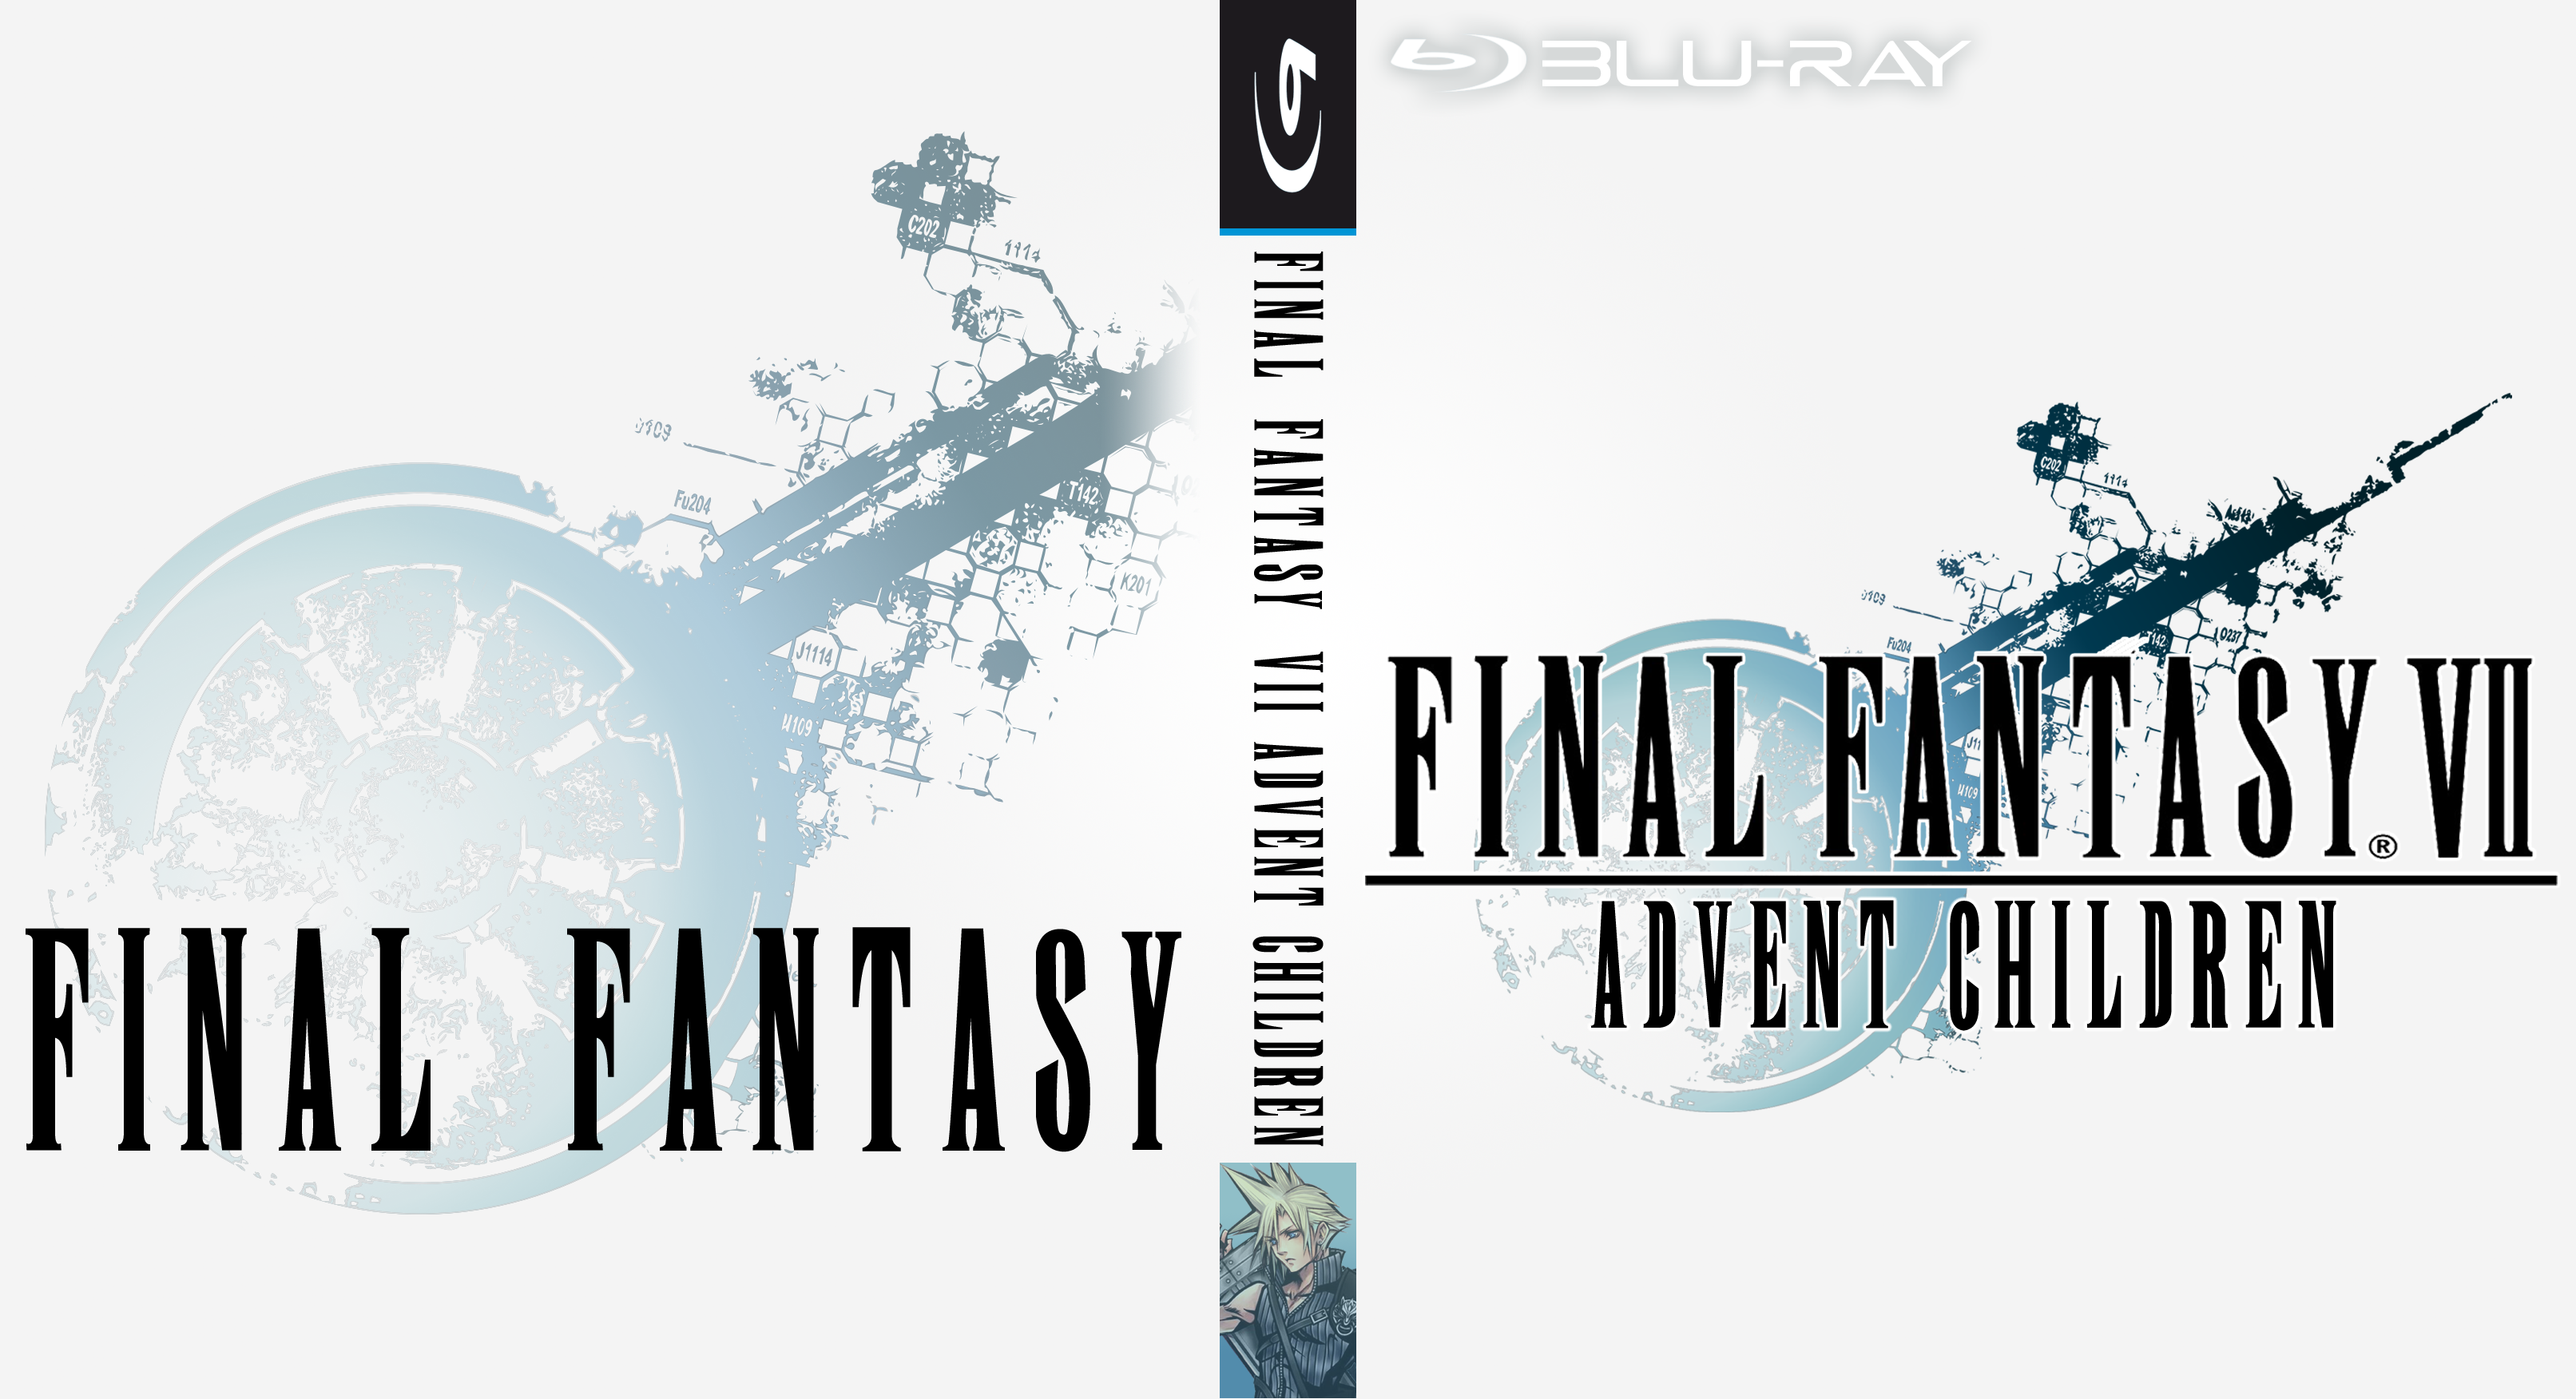 Final Fantasy Vii Advent Children Custom Cover By Cx7001 On Deviantart